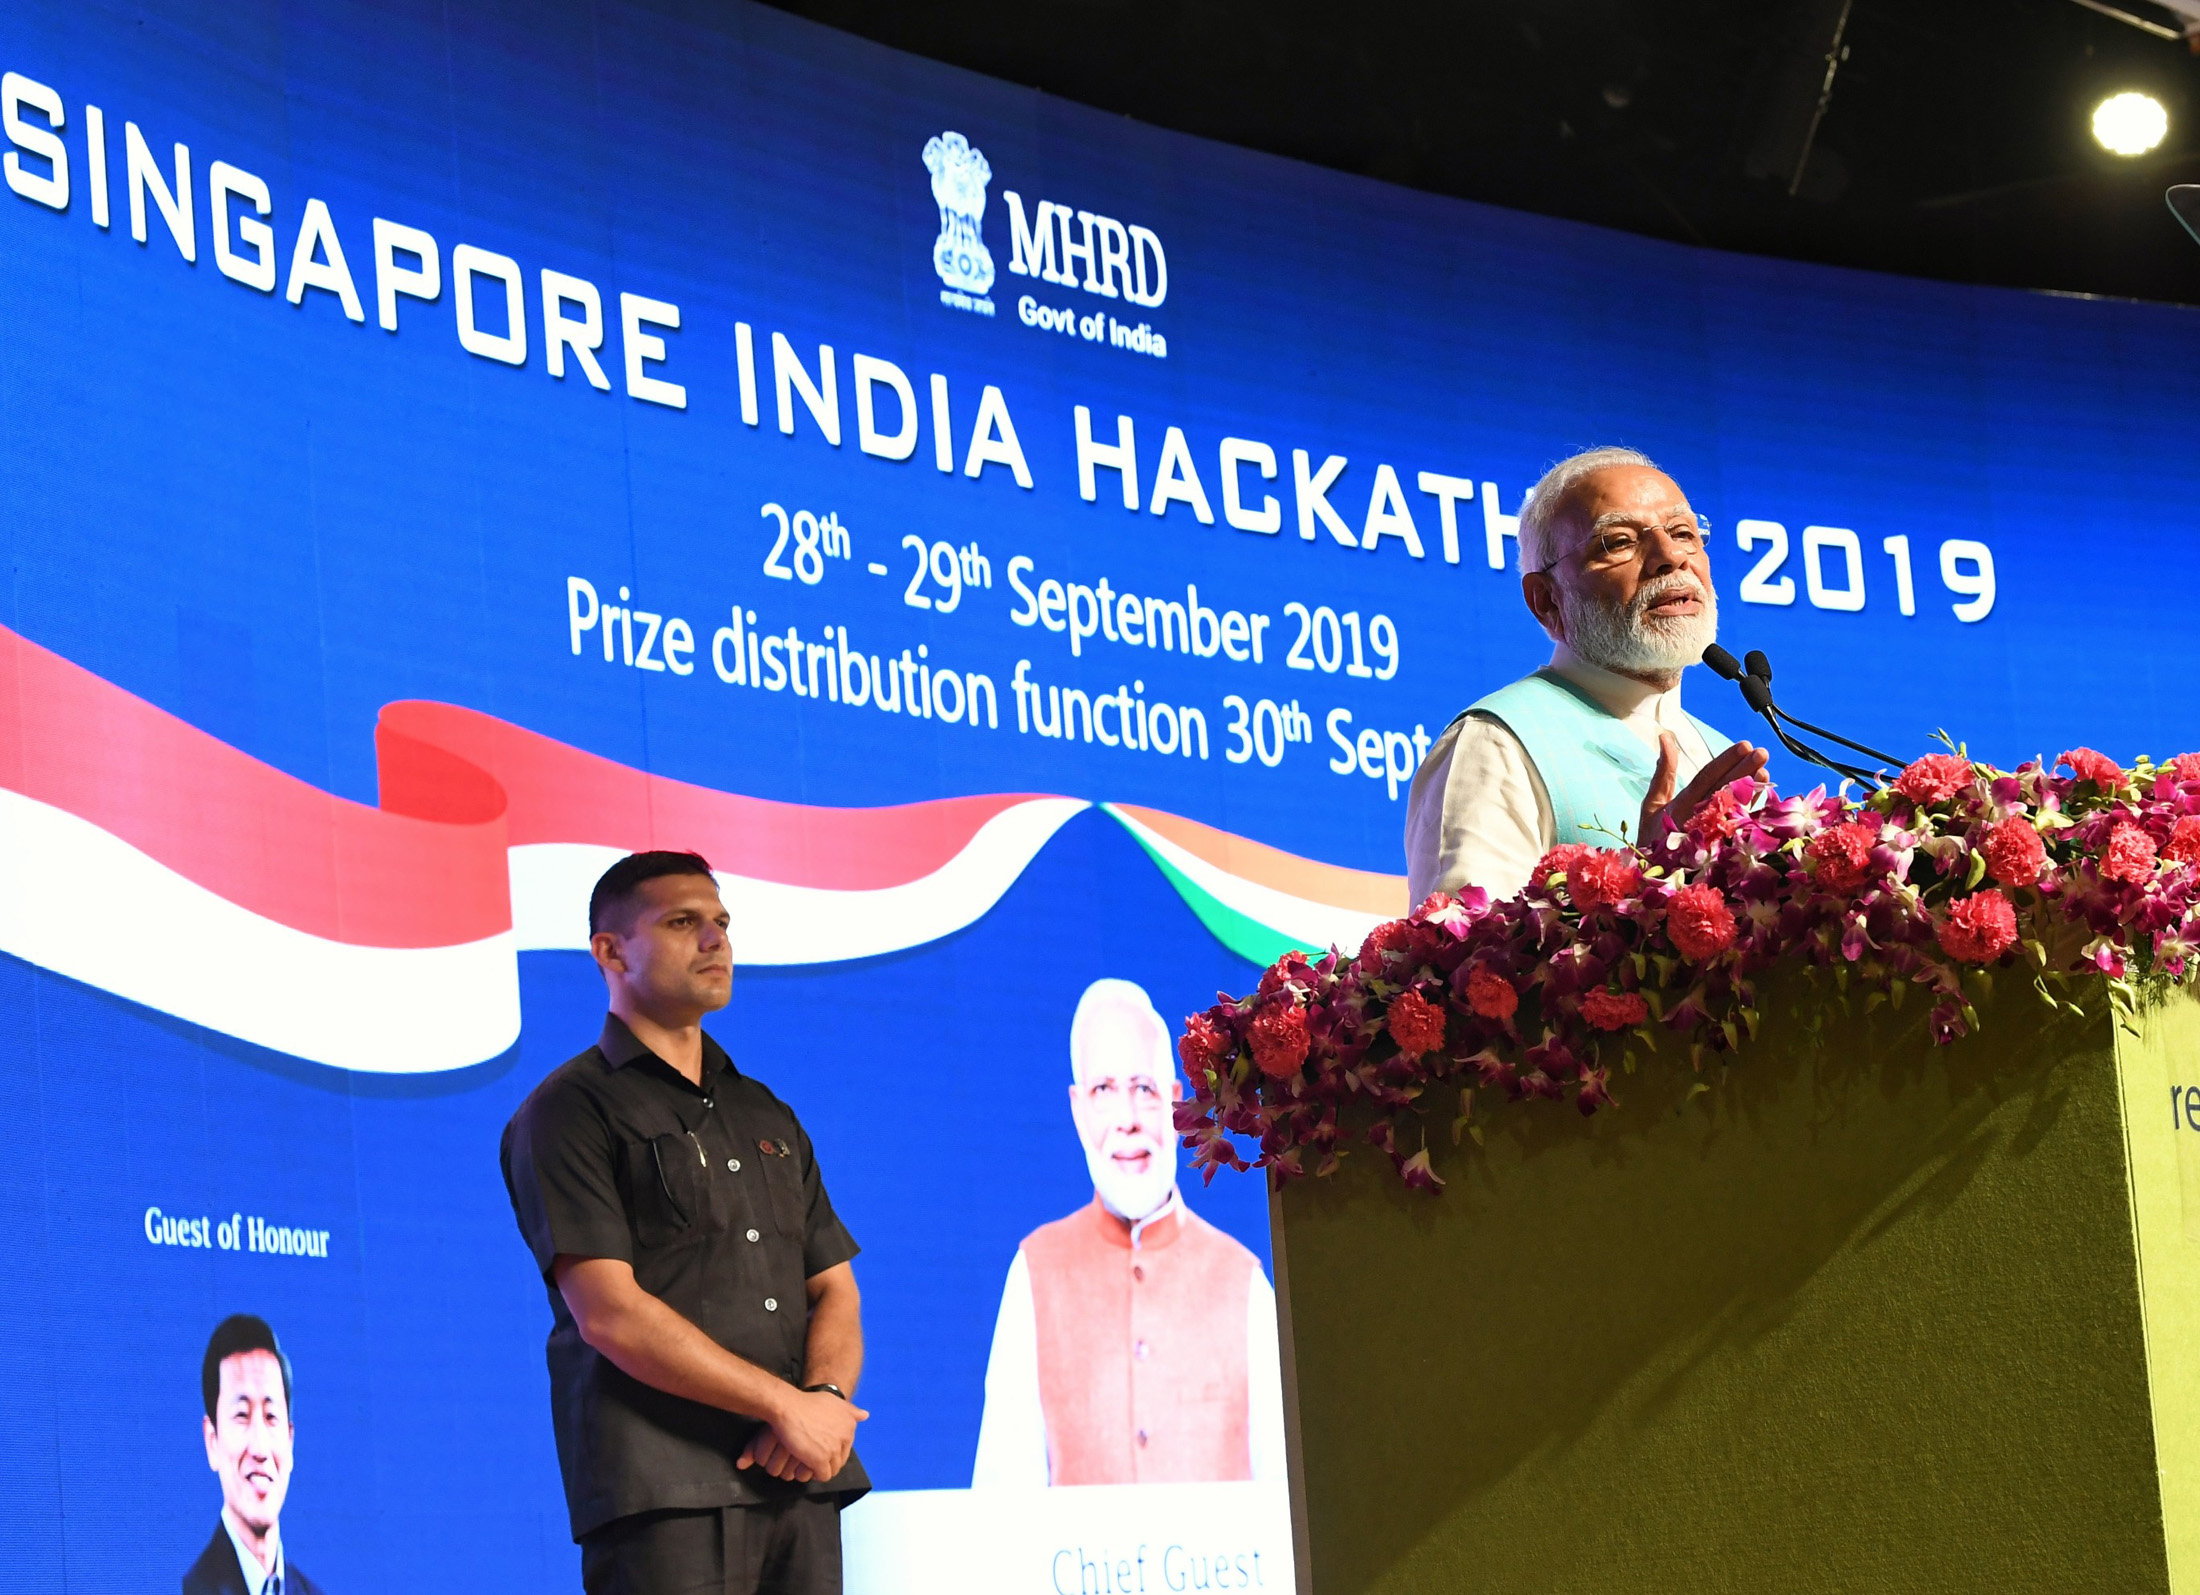 PM's Speech at Singapore – India Hackathon Event at IIT Chennai